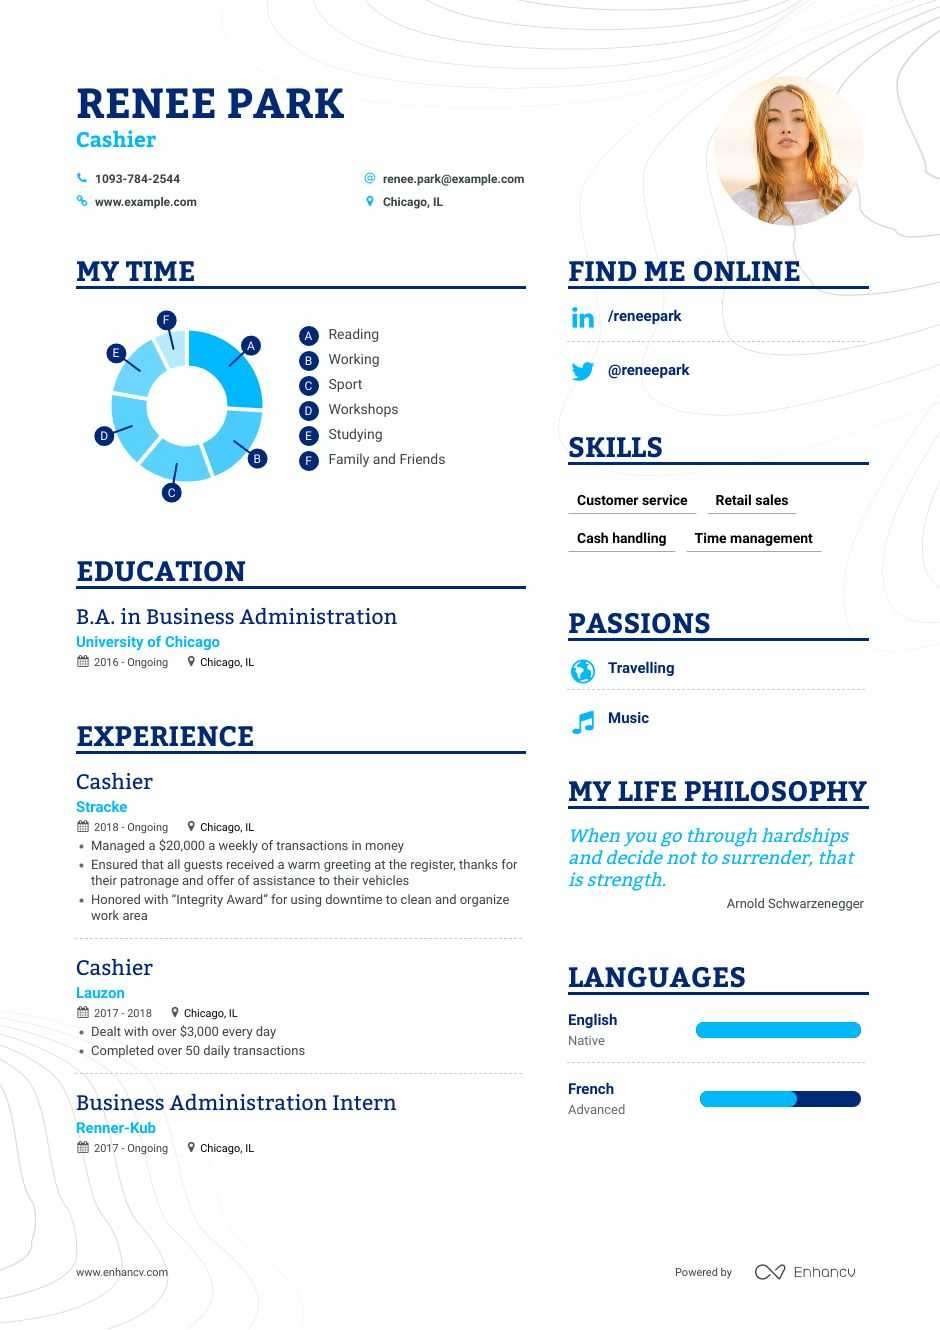 cashier resume example for enhancv summary sample school superintendent gecd mit and Resume Resume Summary For Cashier